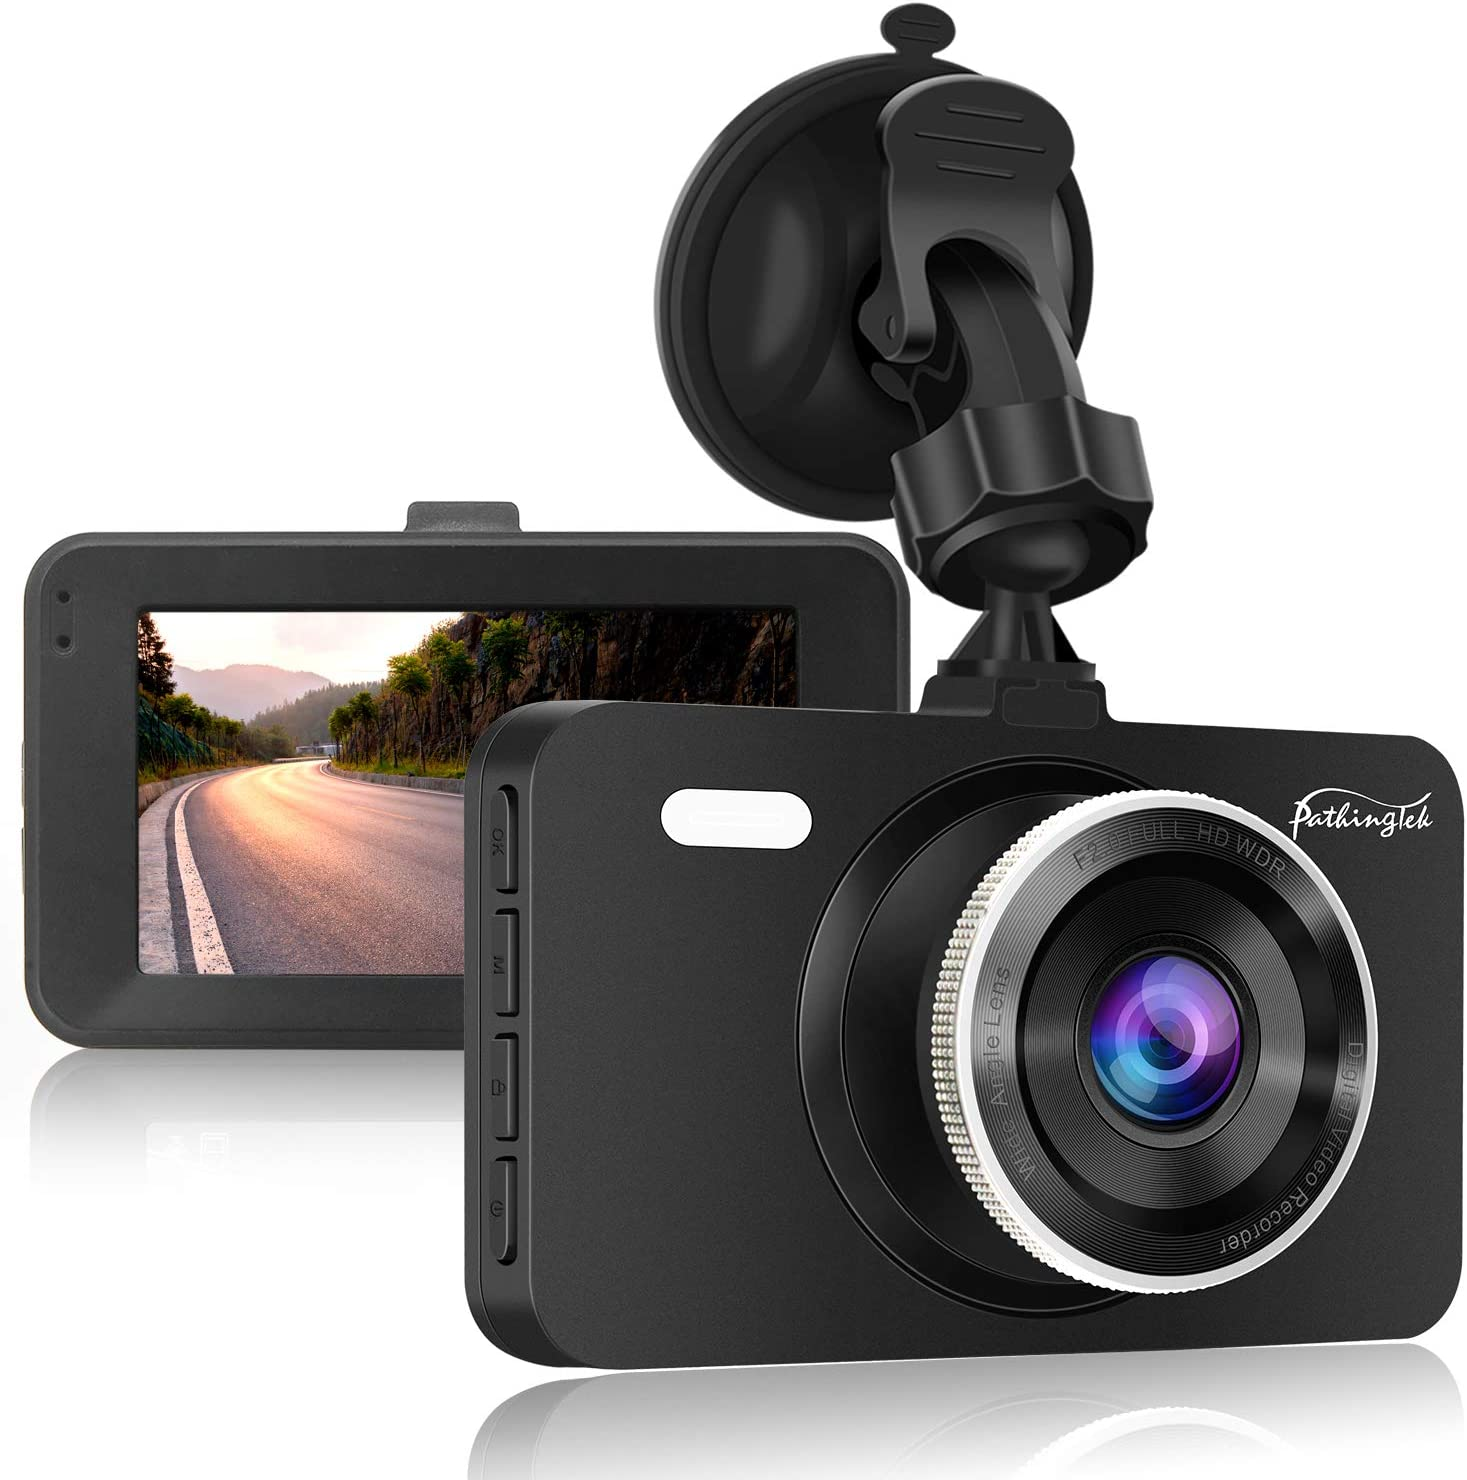 Dash Cam 1080P DVR Dashboard Camera Full HD 3